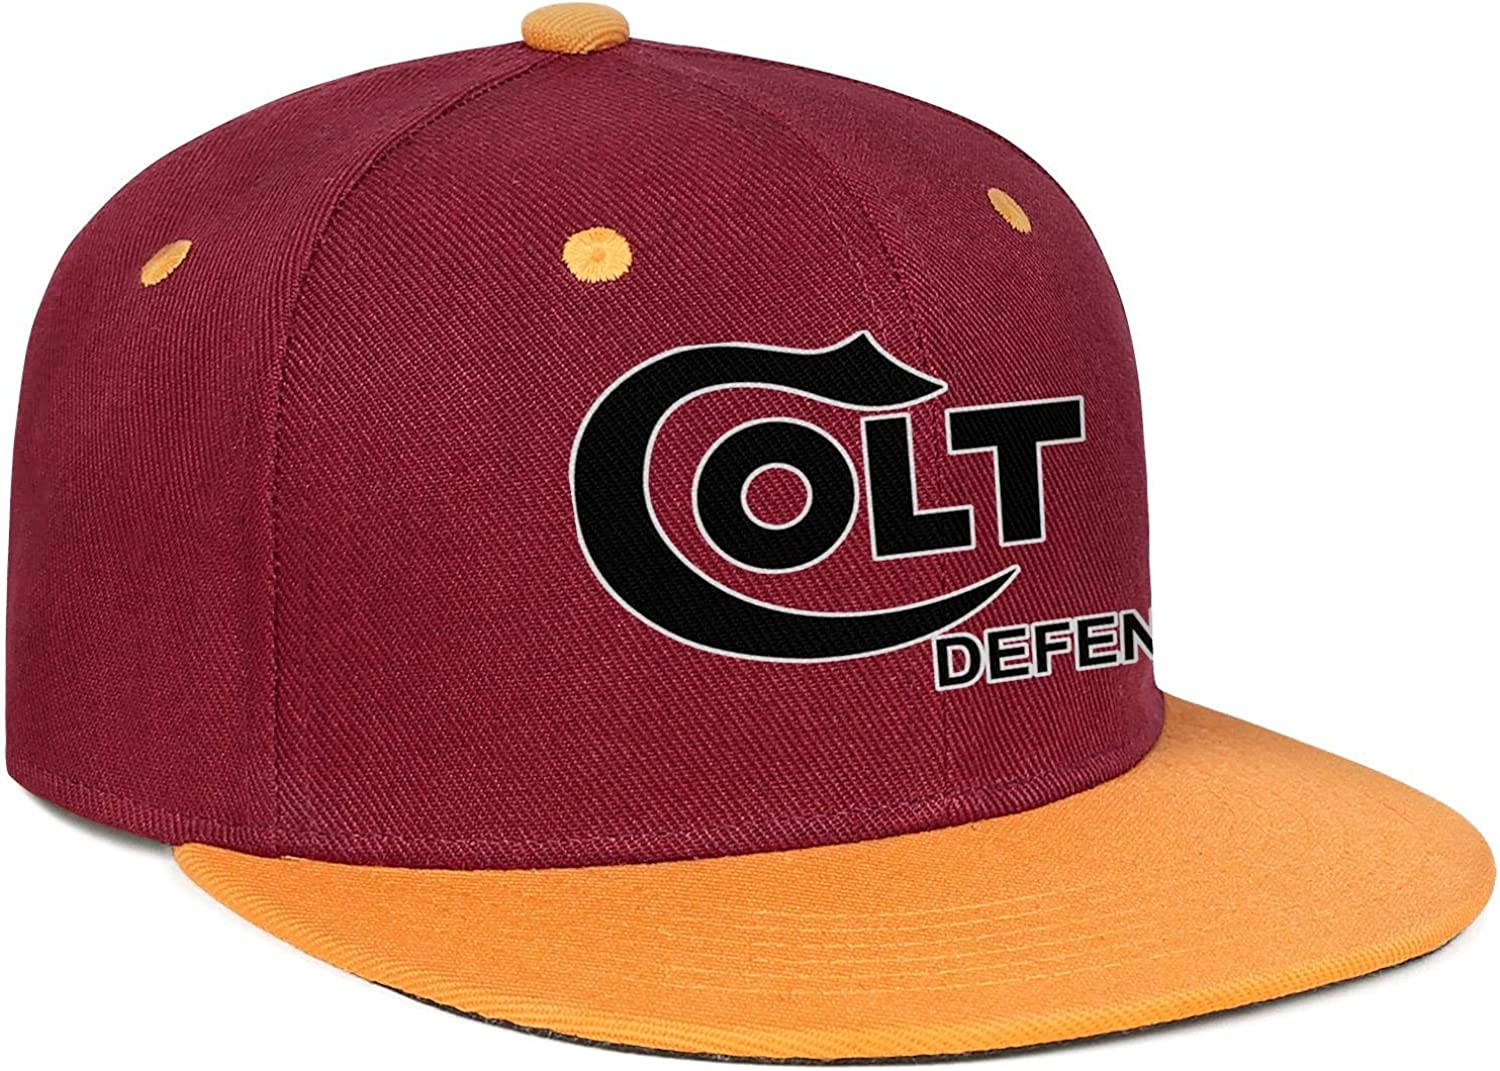 Mens Colt-Defense Hip Hop Baseball Cap Cotton Adjustable Fit Truck Drivers Hat Sports Flat Top Hats